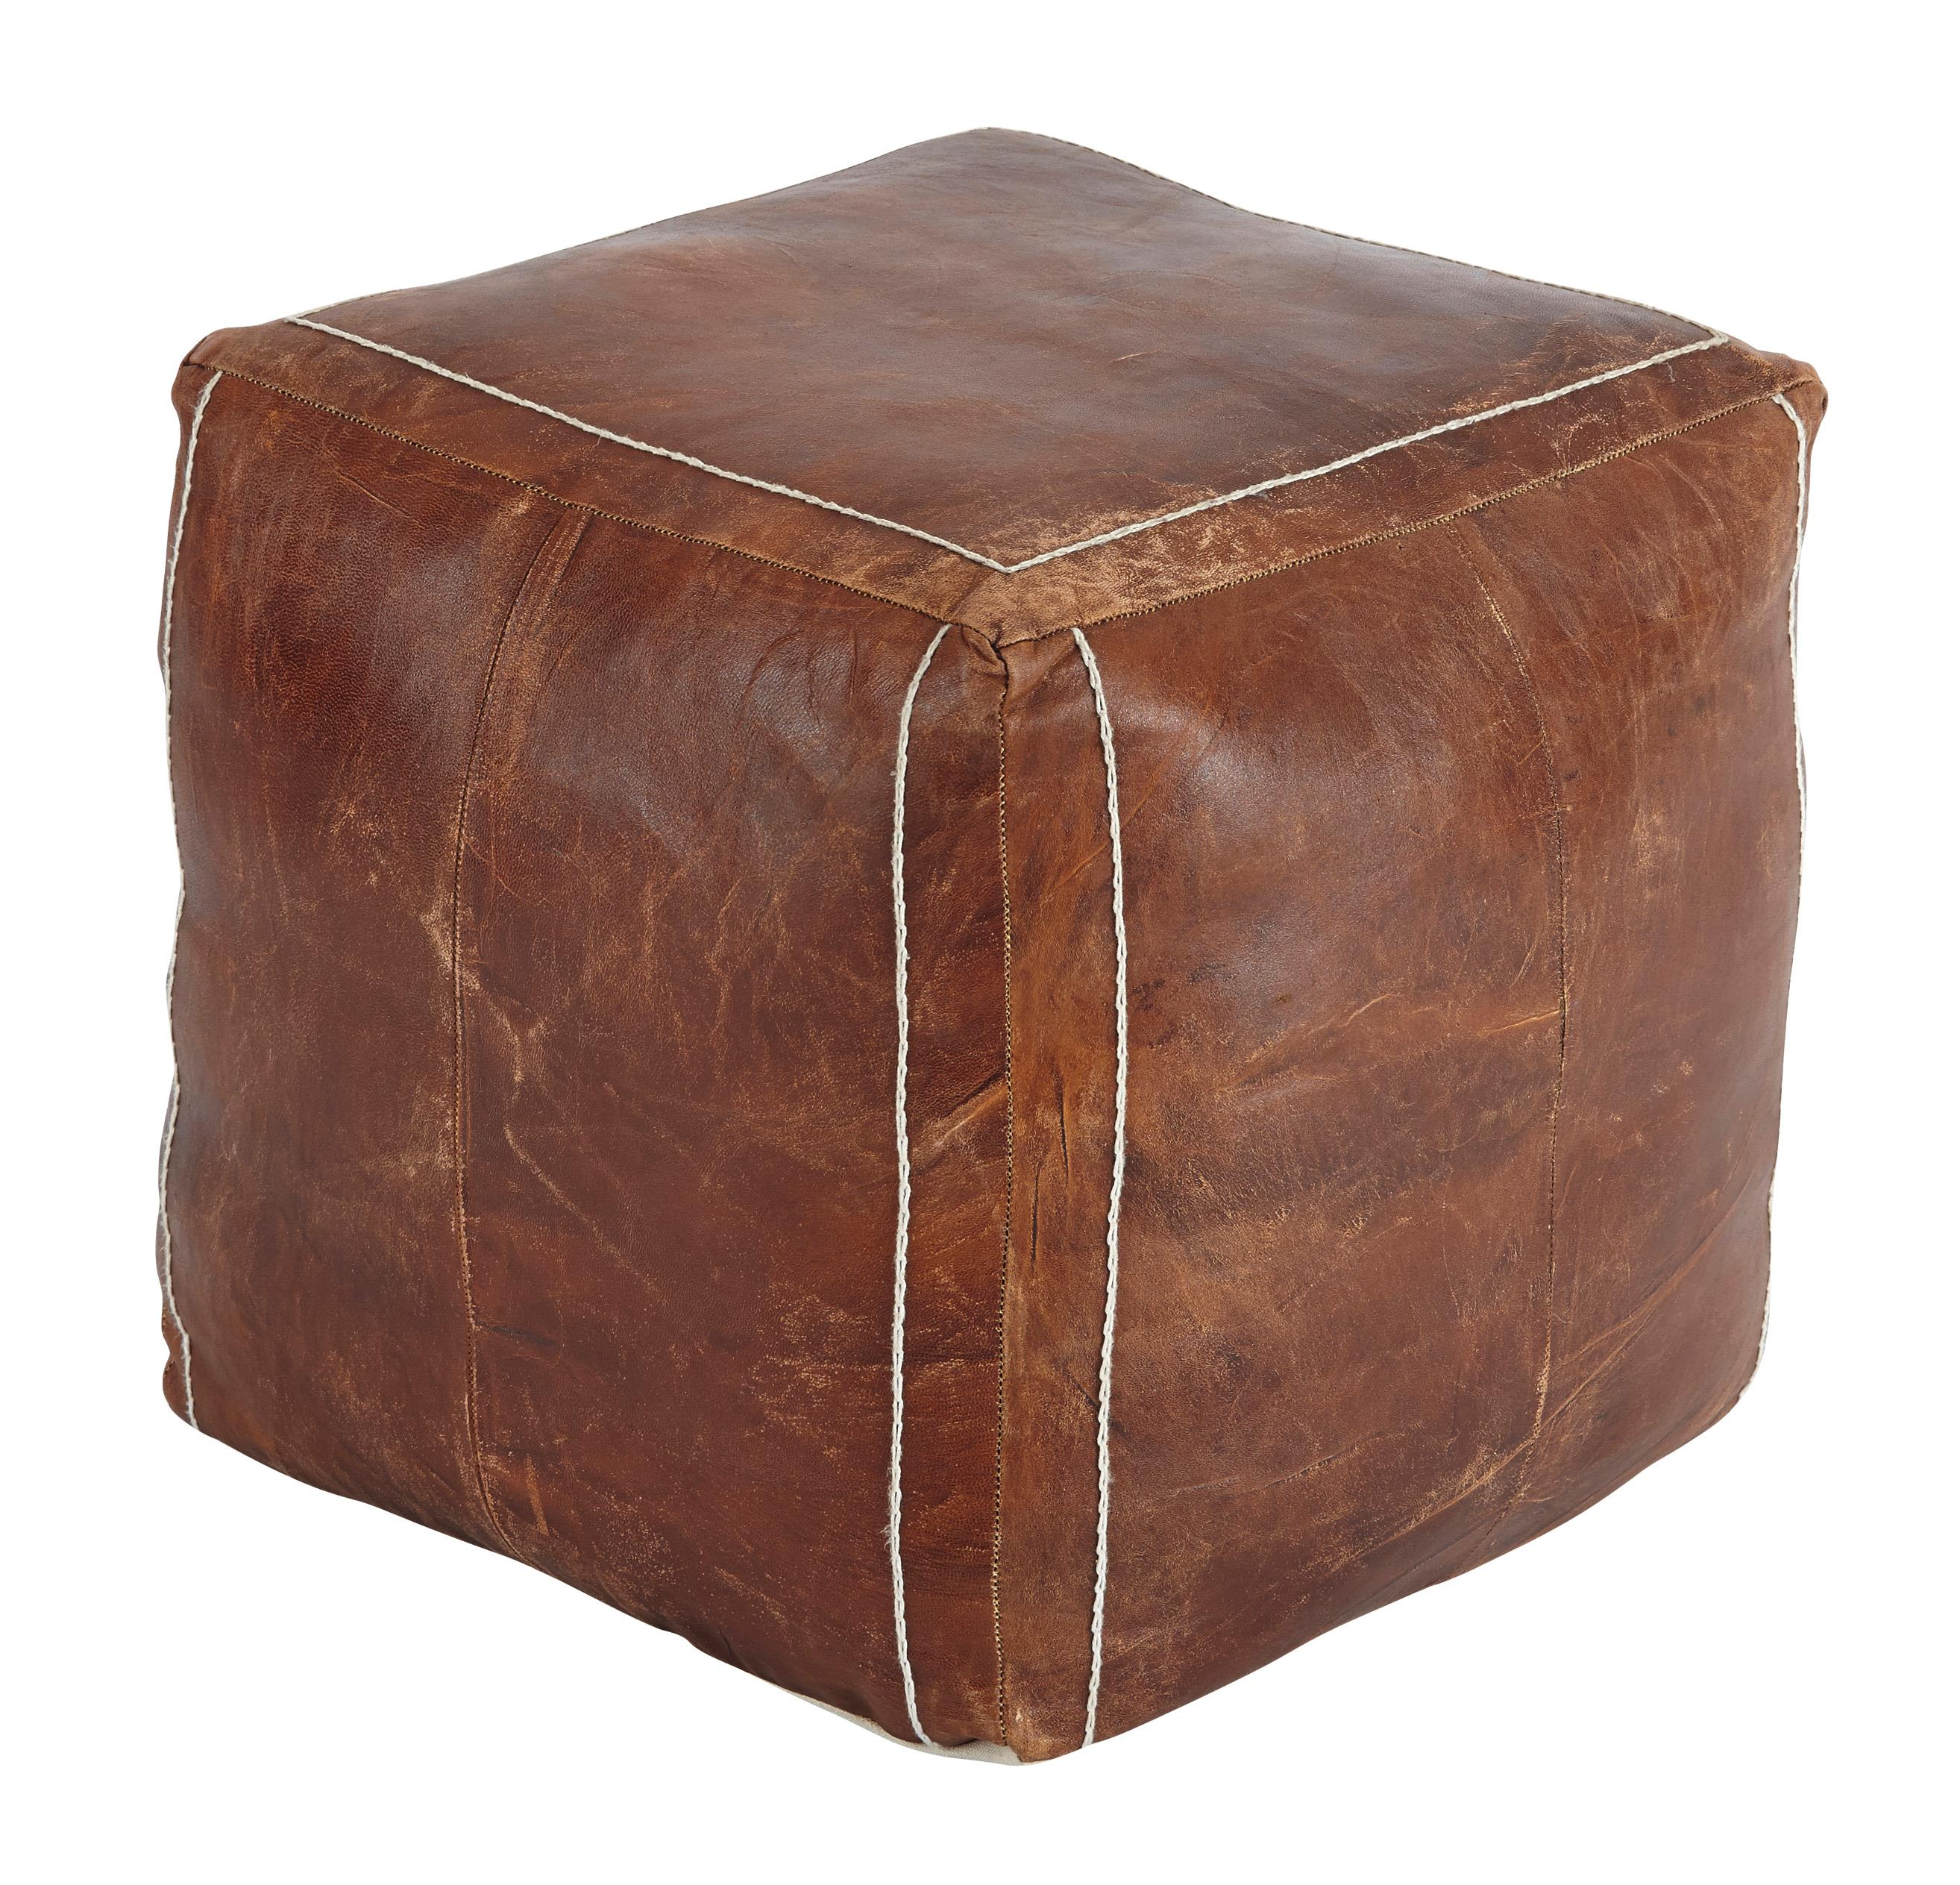 Signature Design by Ashley Poufs Vintage - Brown Pouf - Item Number: A1000417